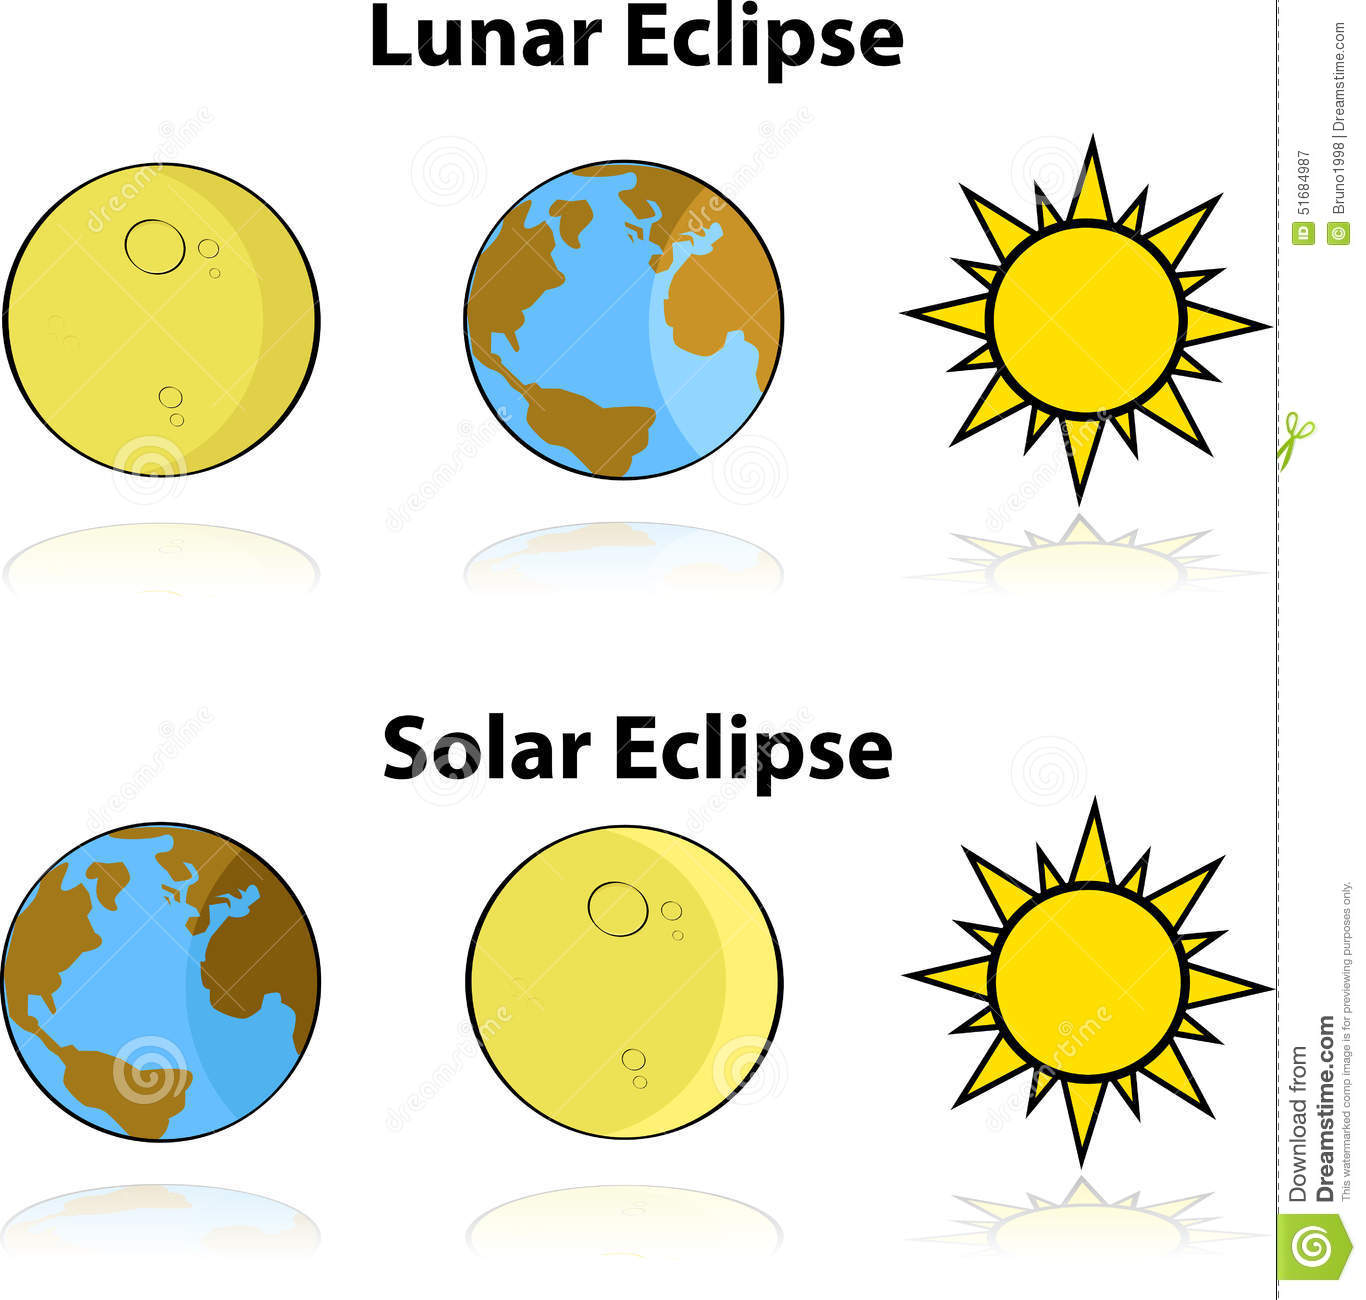 A Solar Eclipse of the Earth Sun and Moon